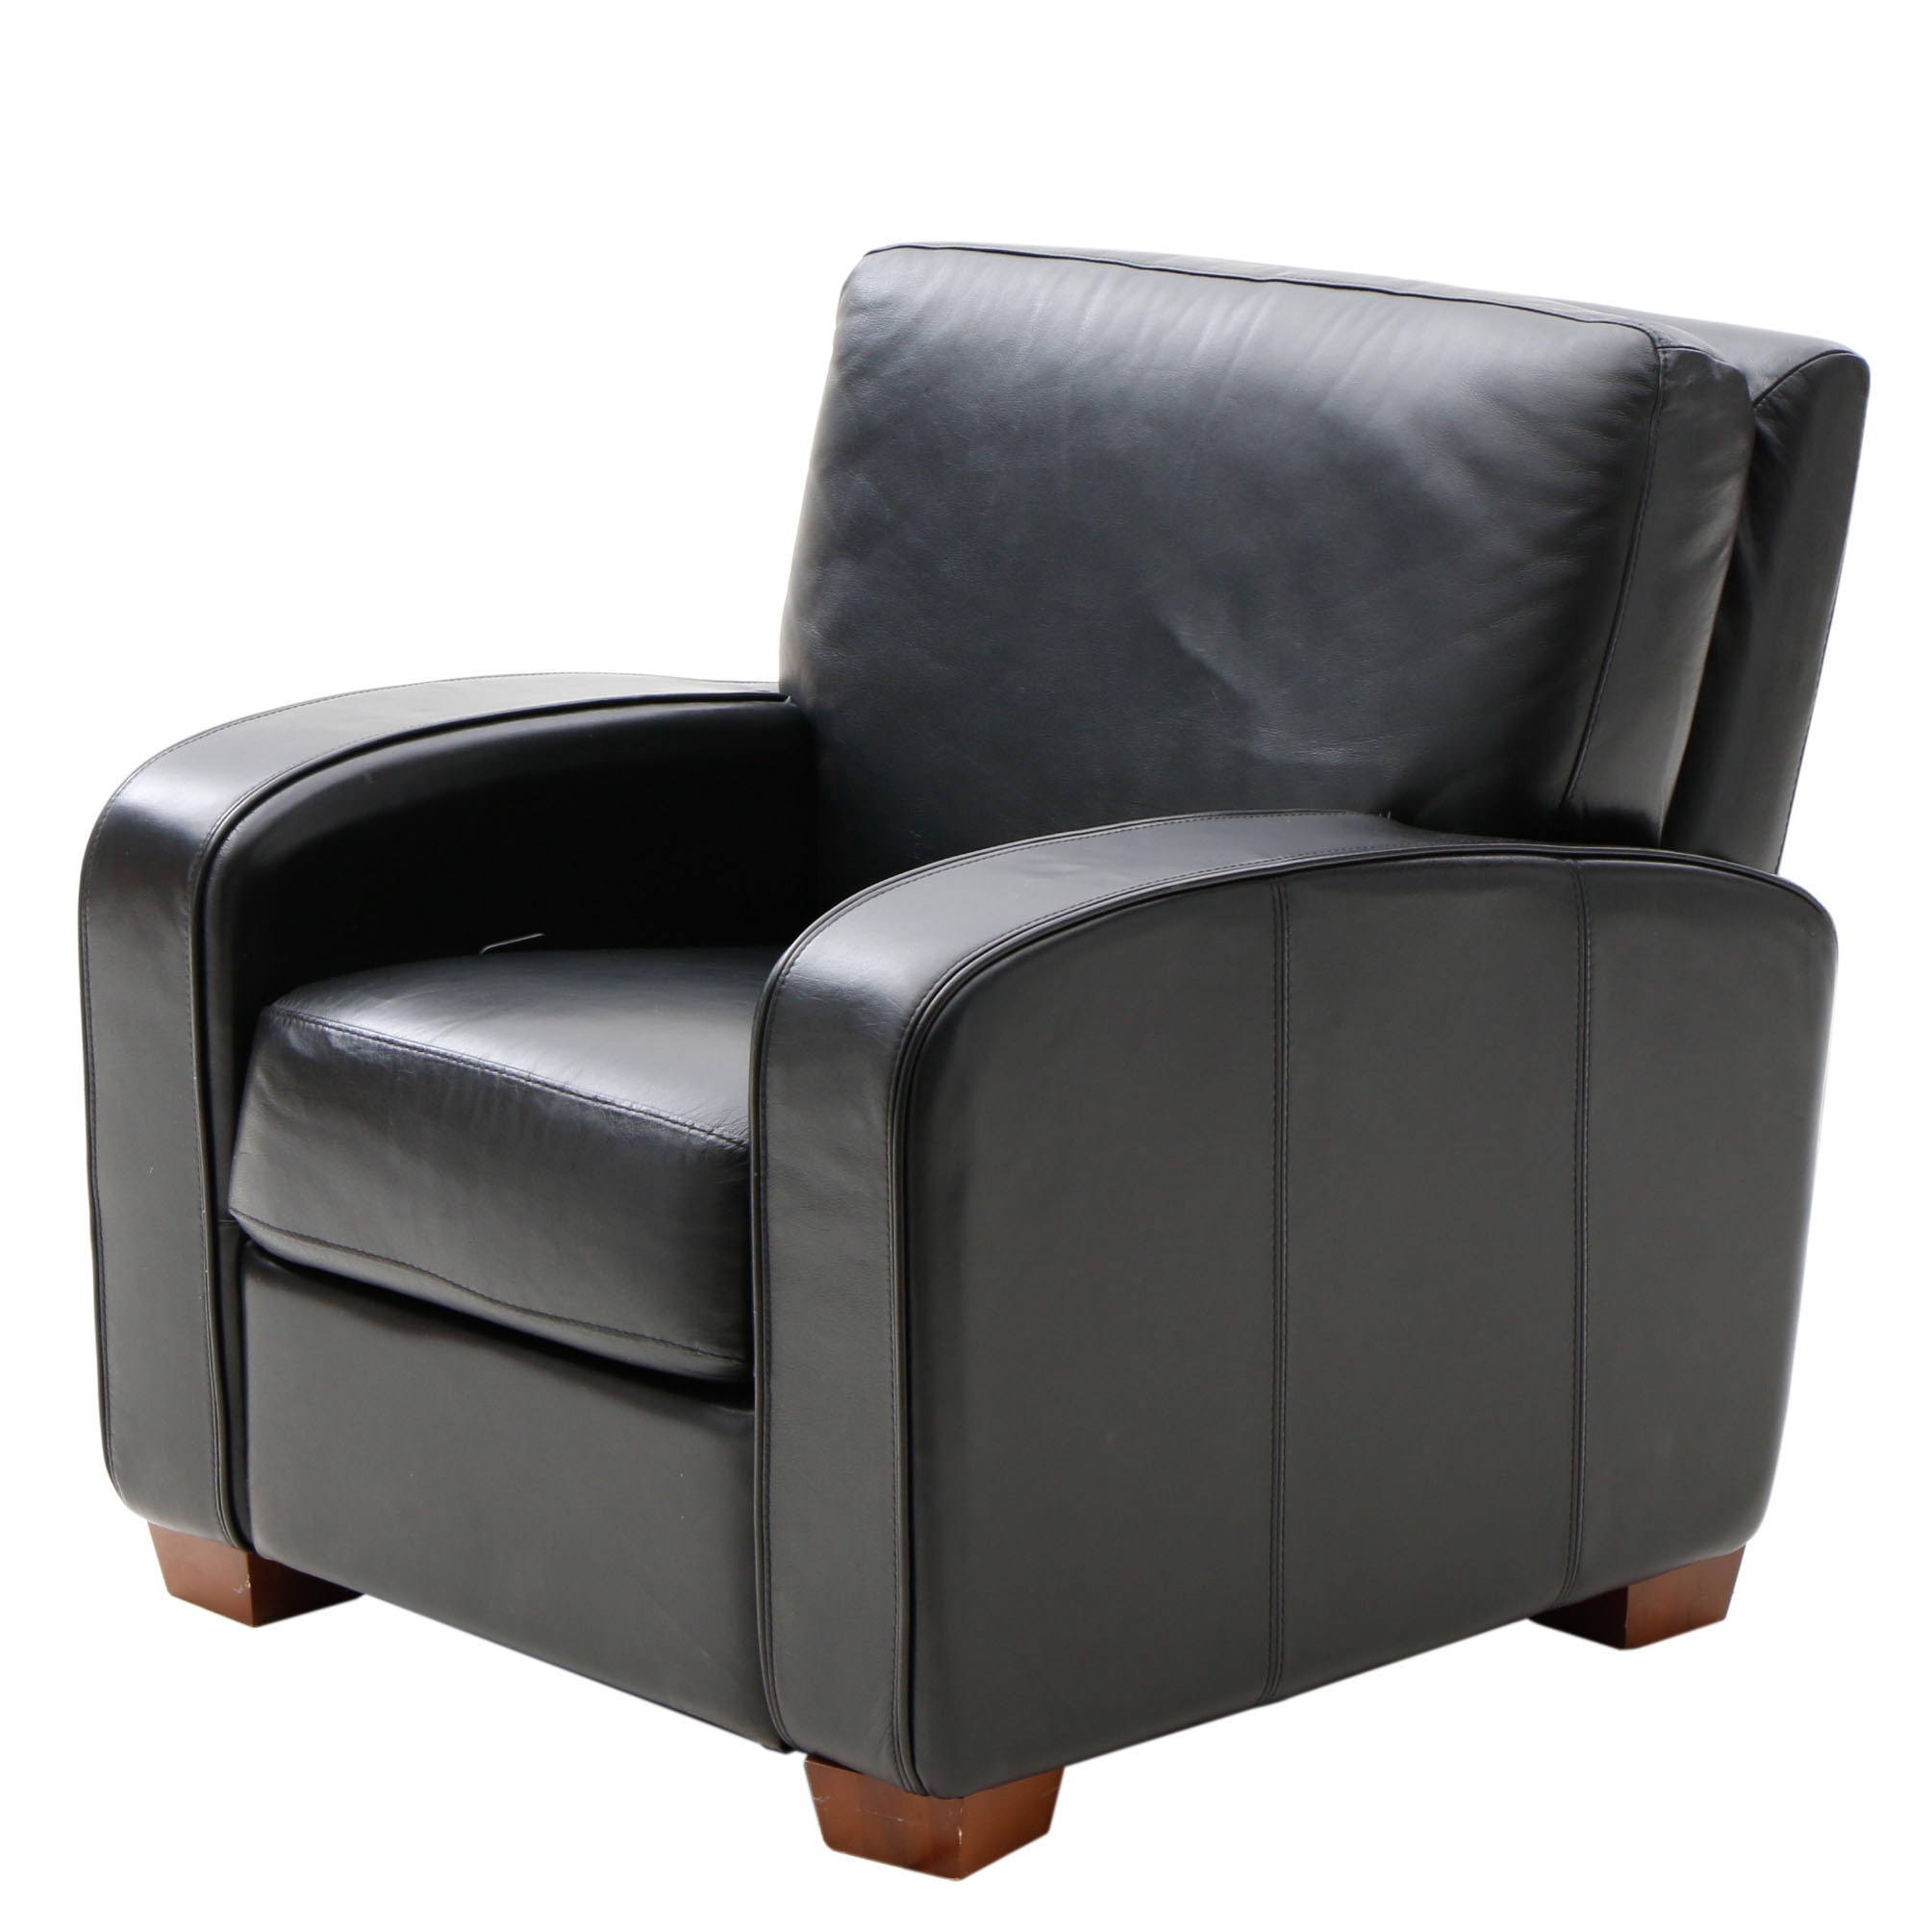 Contemporary Black Leather Recliner